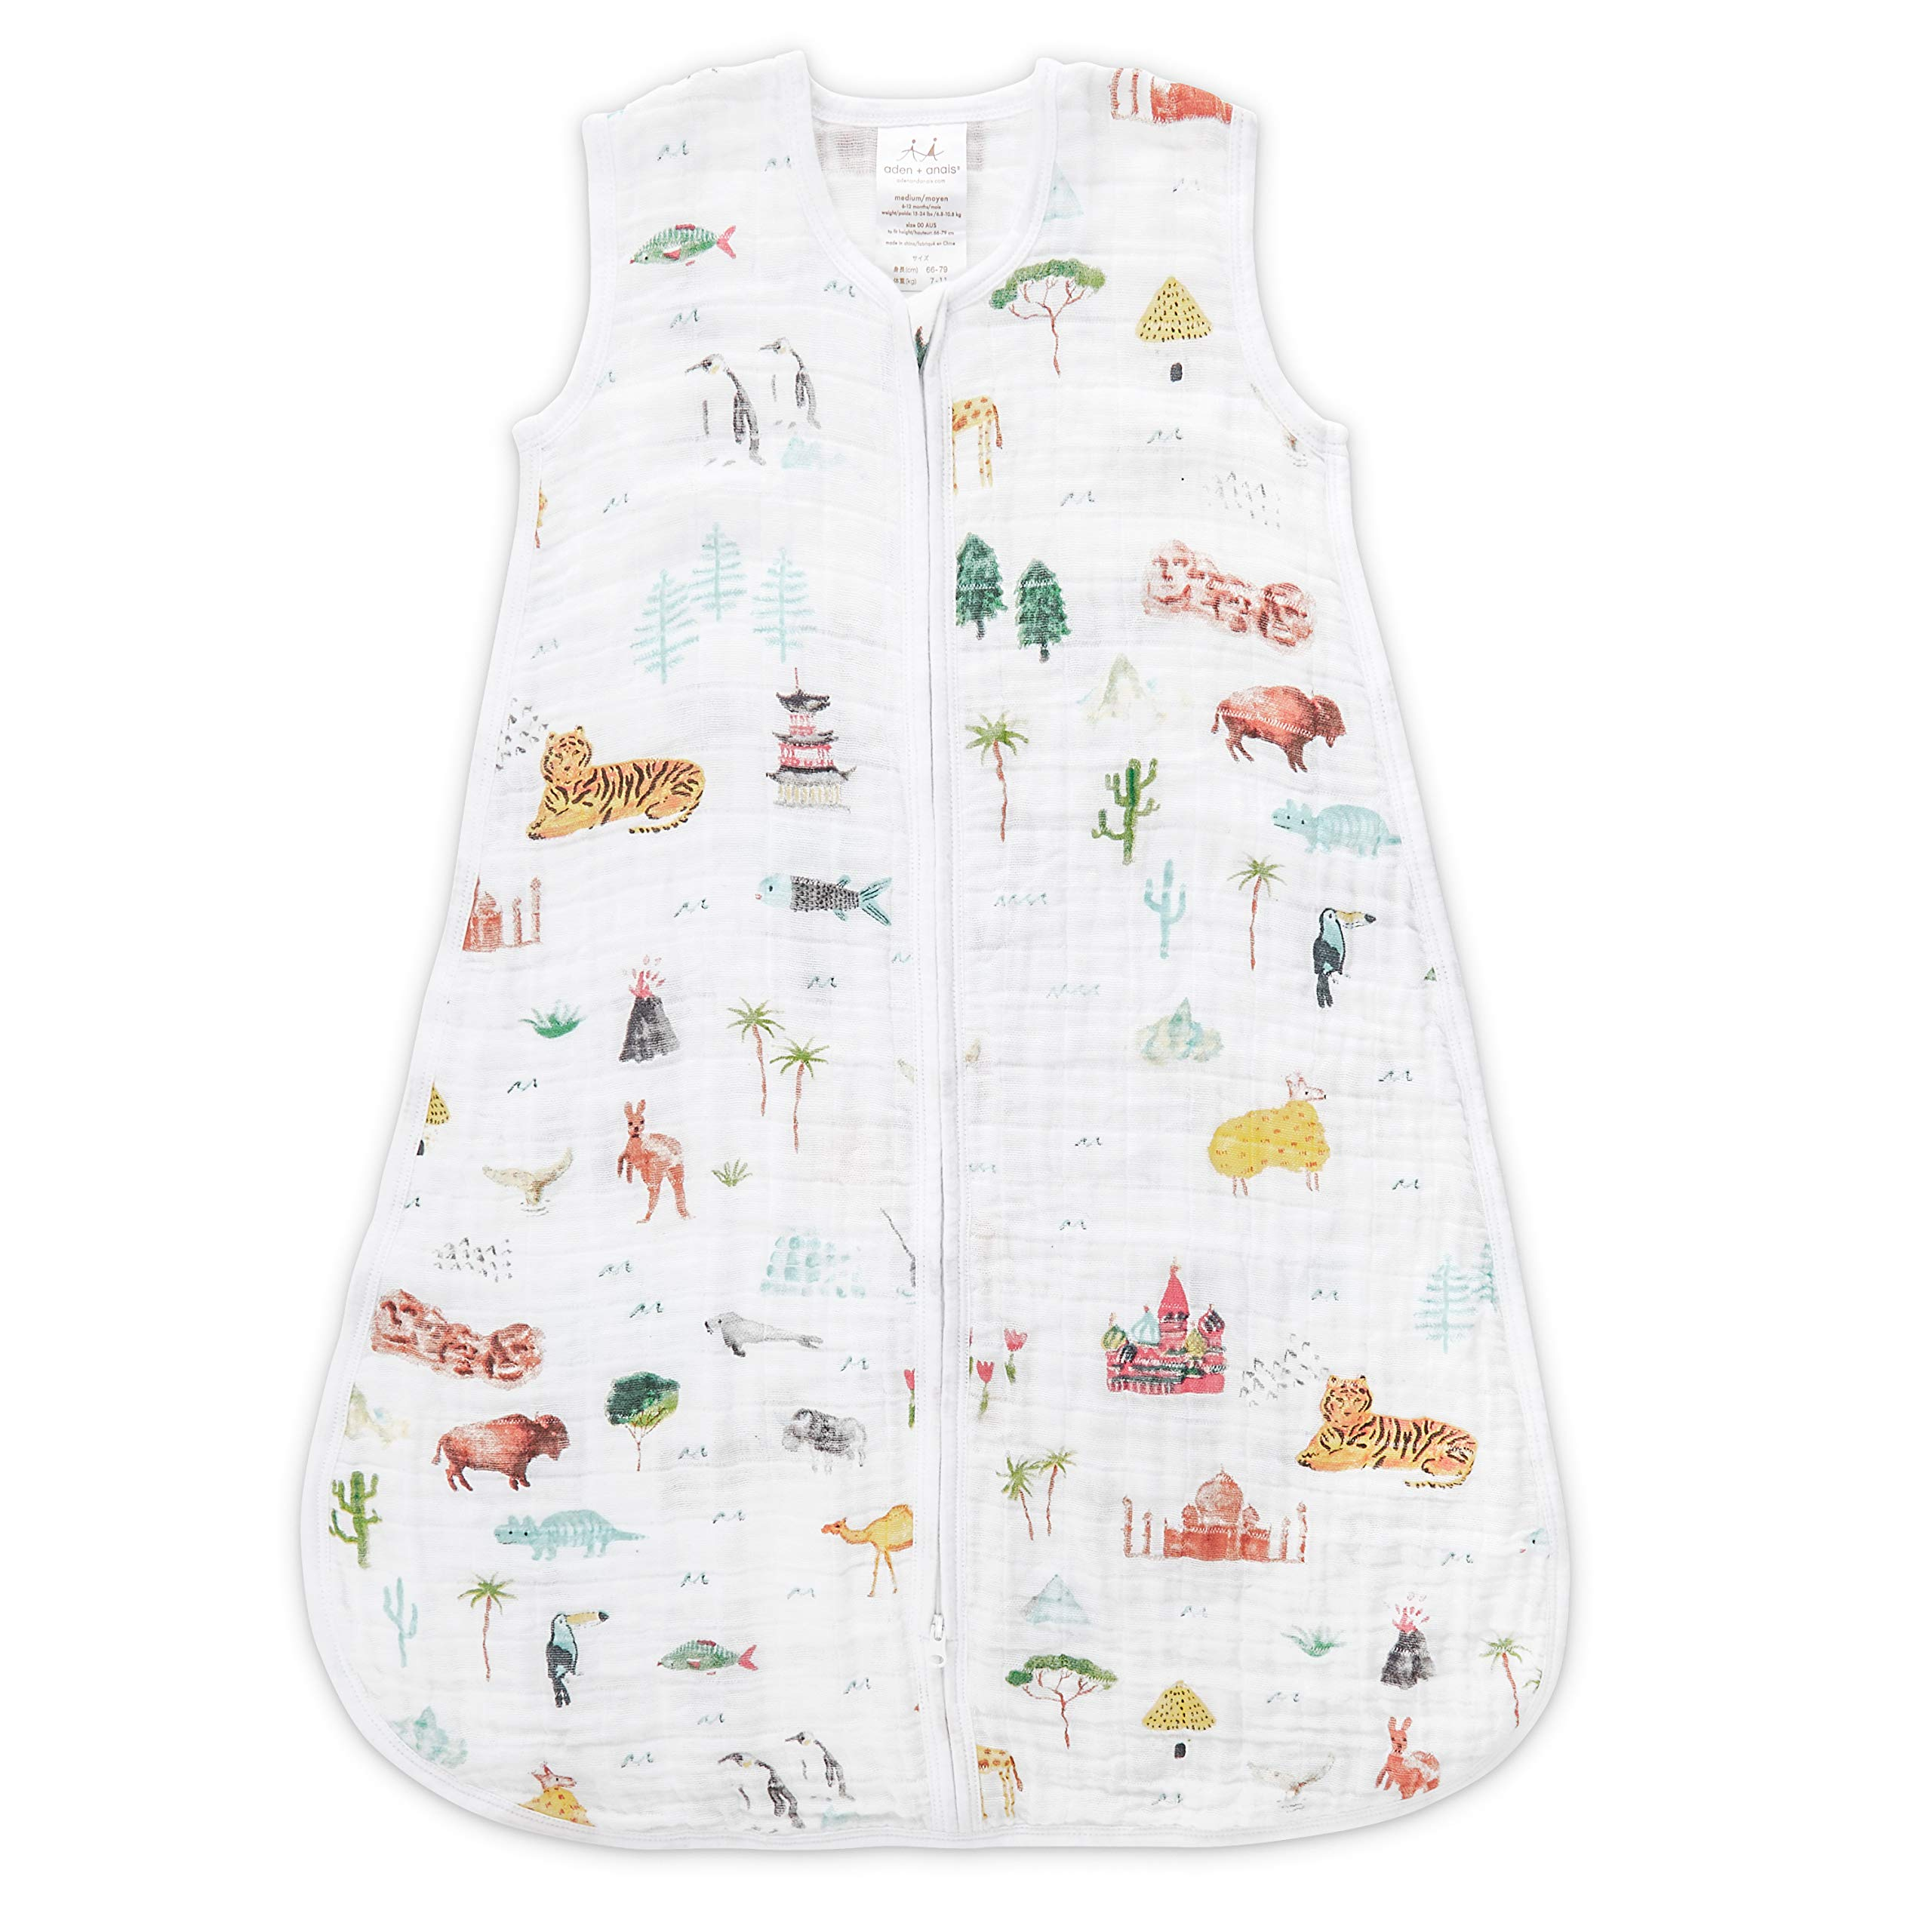 aden + anais Classic Sleeping Bag, 100% Cotton Muslin, Wearable Baby Blanket (X-Large, Around The World - Sites) by aden + anais